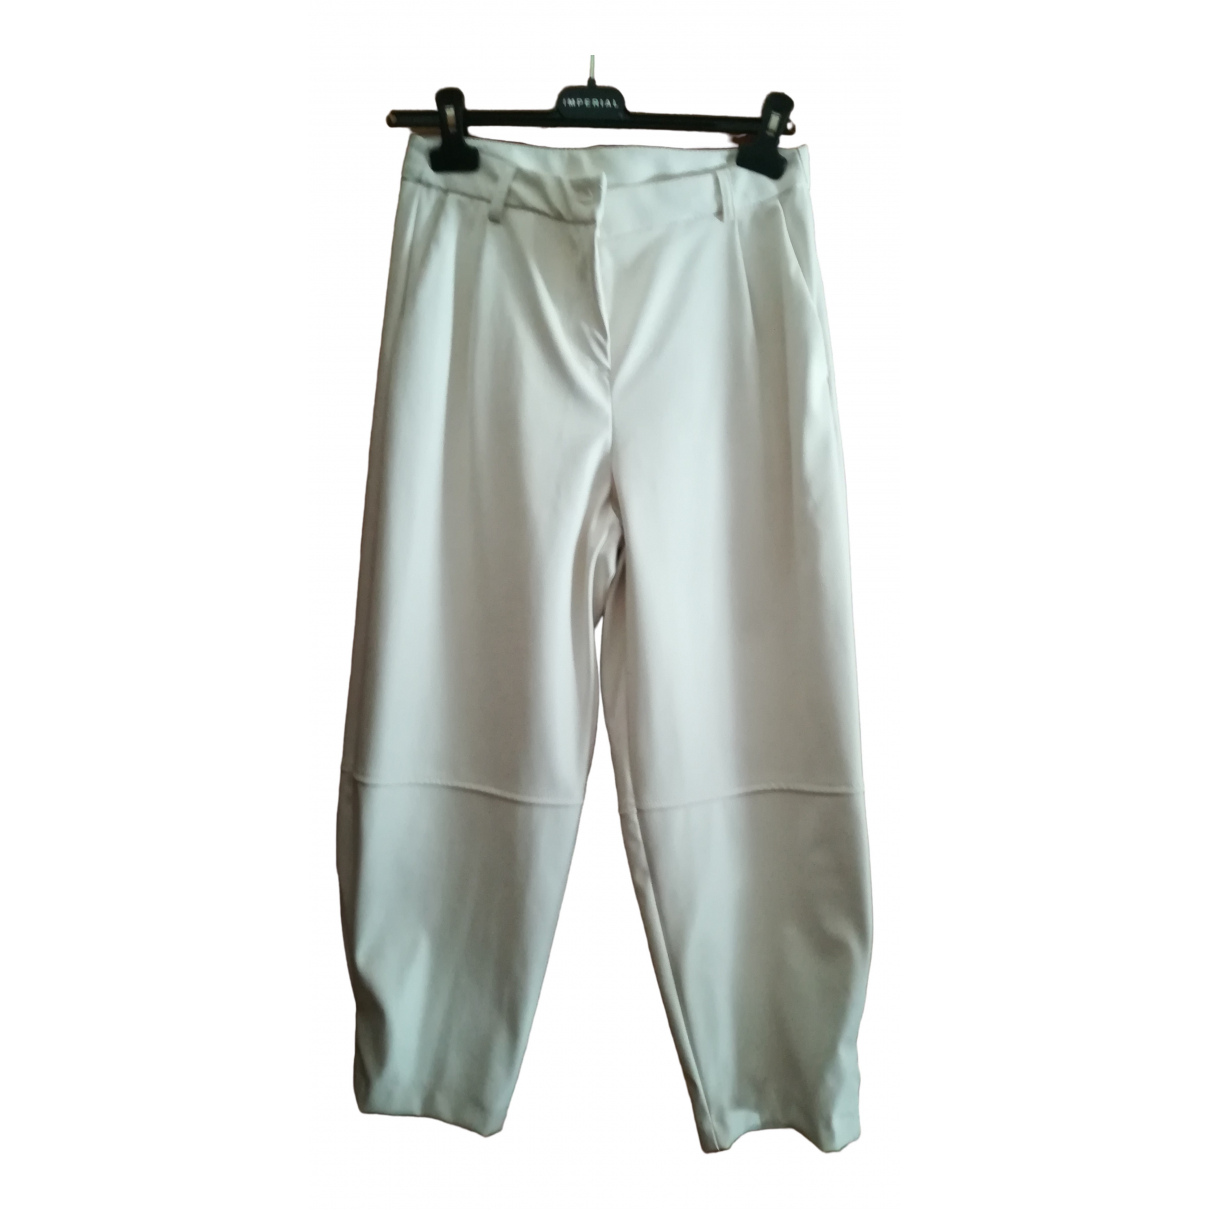 Impérial \N White Leather Trousers for Women S International